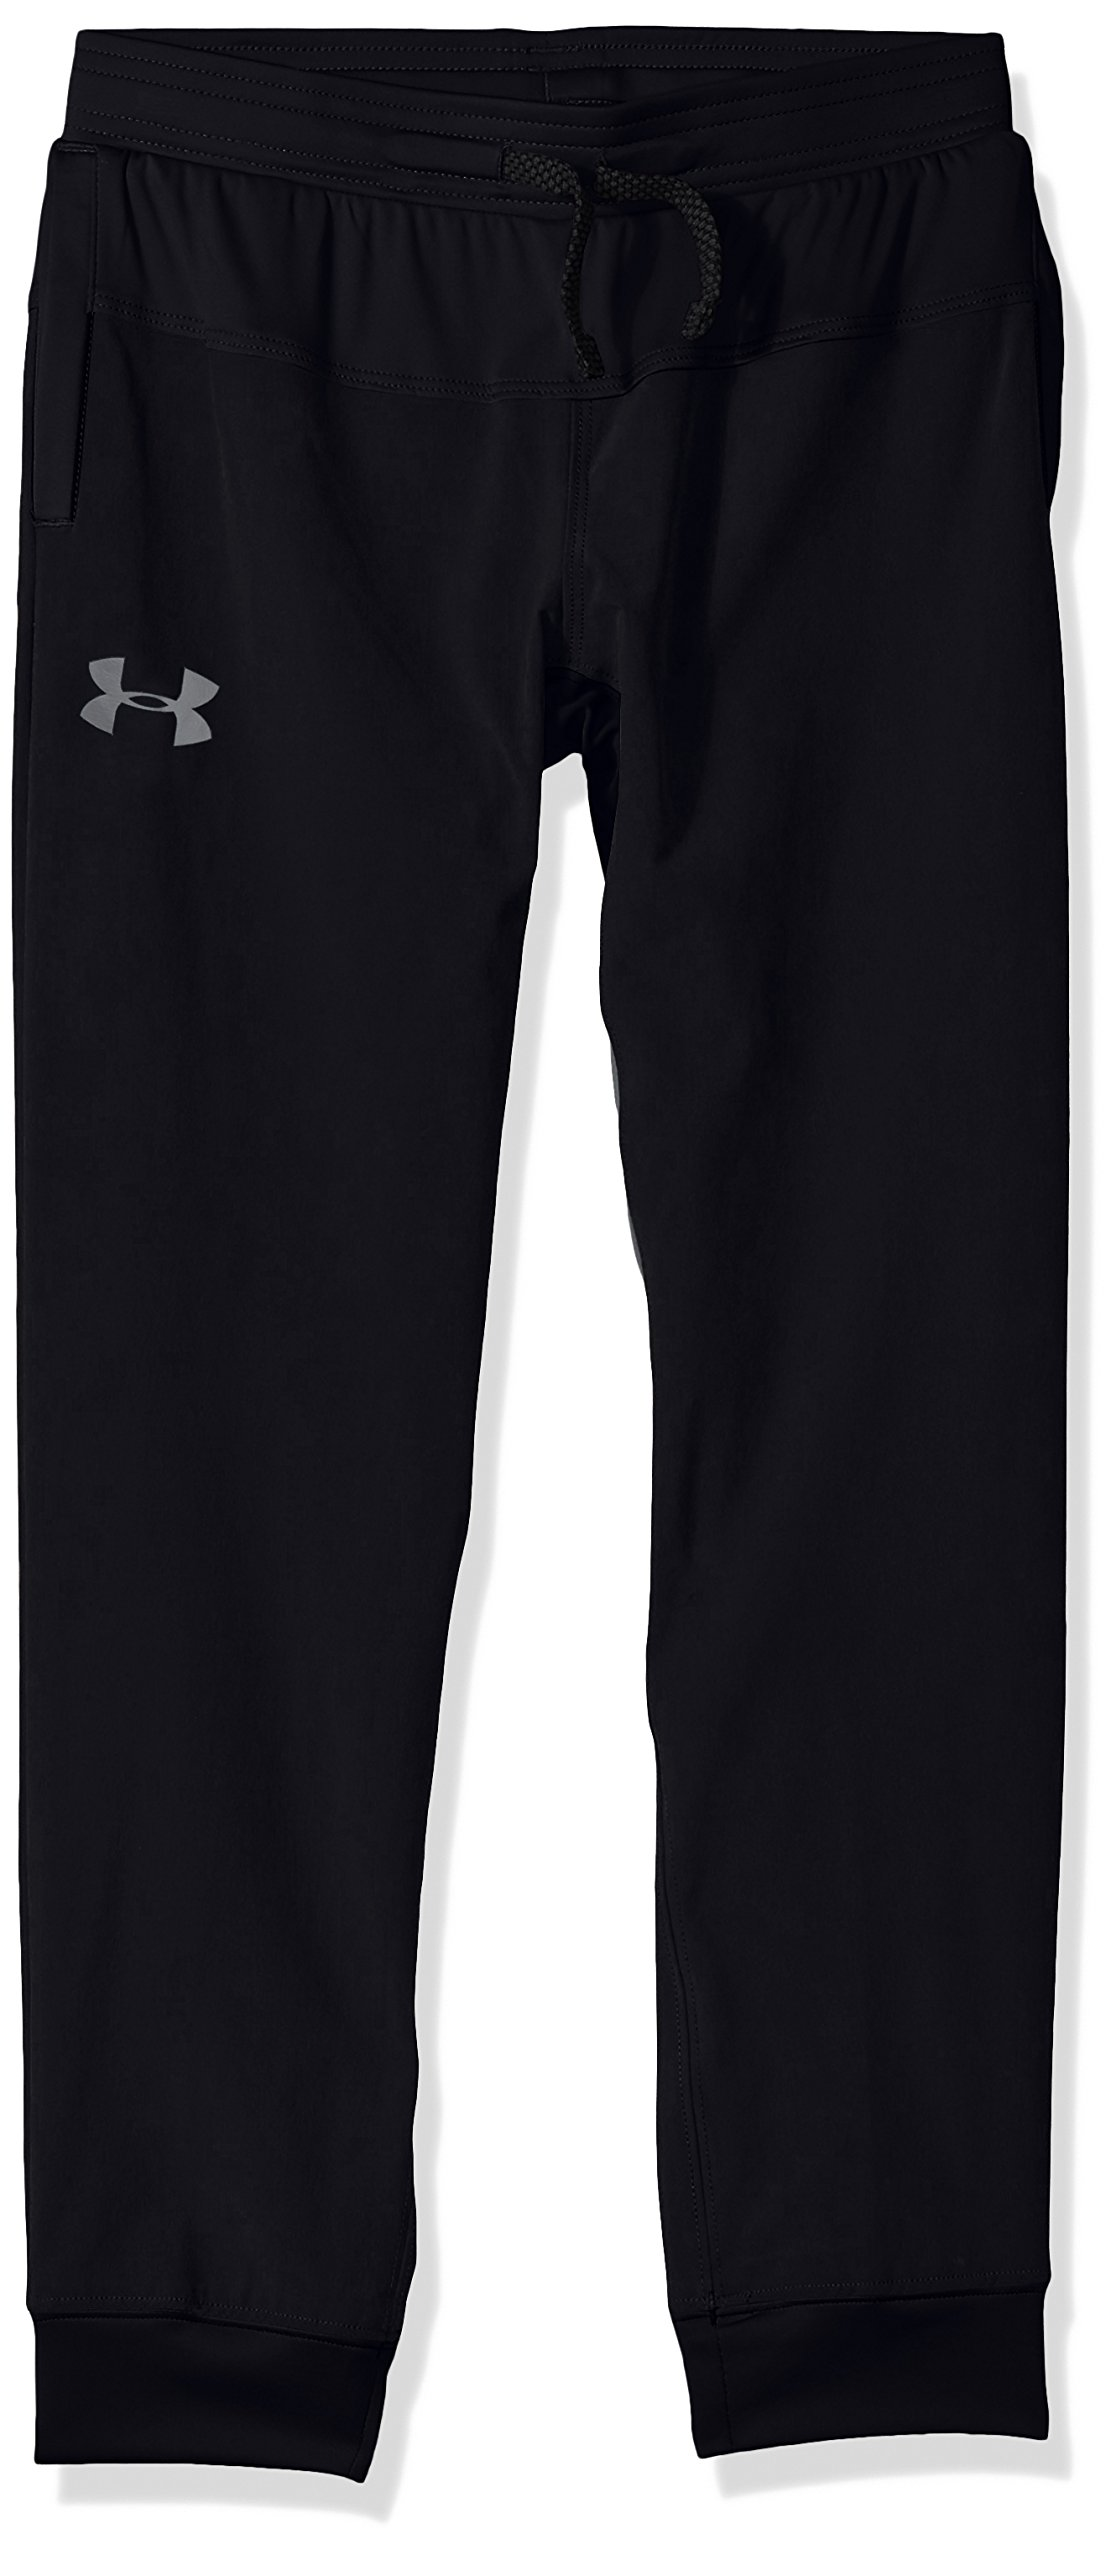 Under Armour Boys Jersey Lined woven Pants, Black (001)/Graphite, Youth X-Small by Under Armour